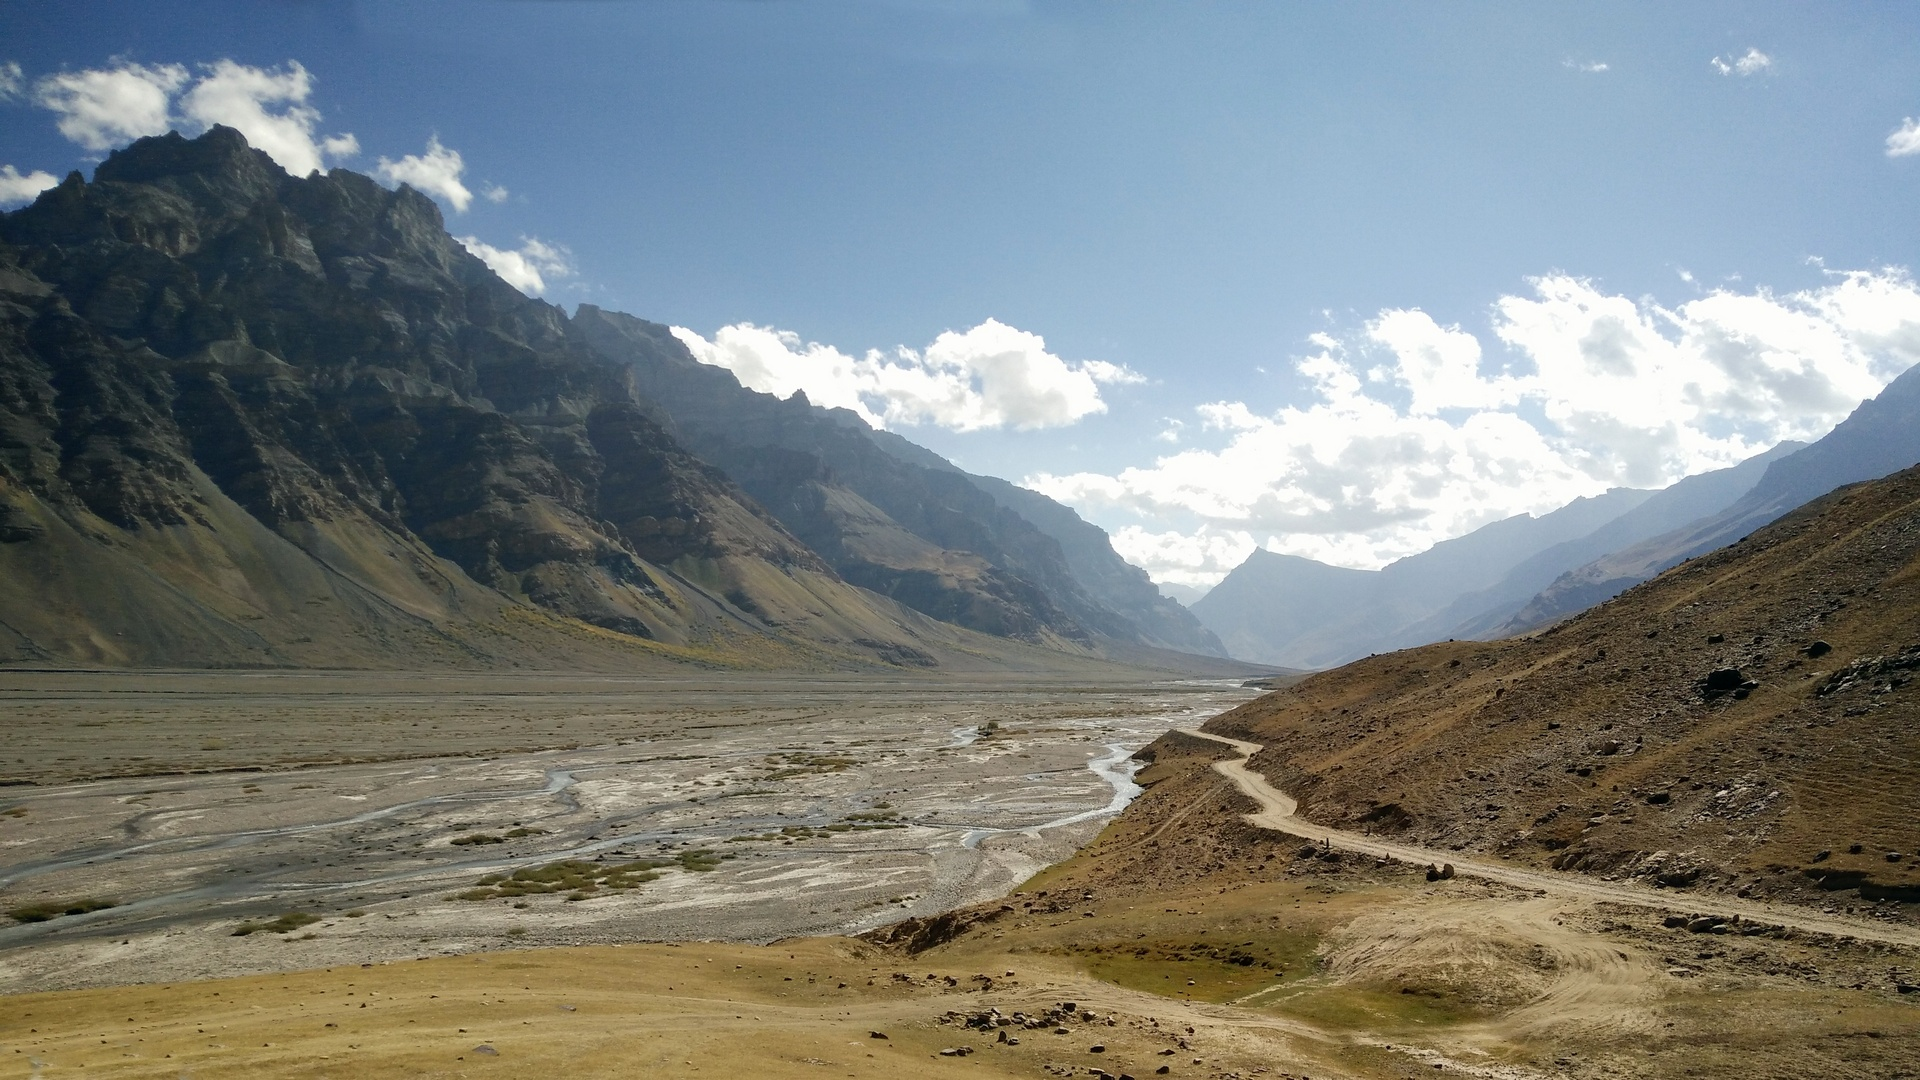 Looking down the Spiti Valley